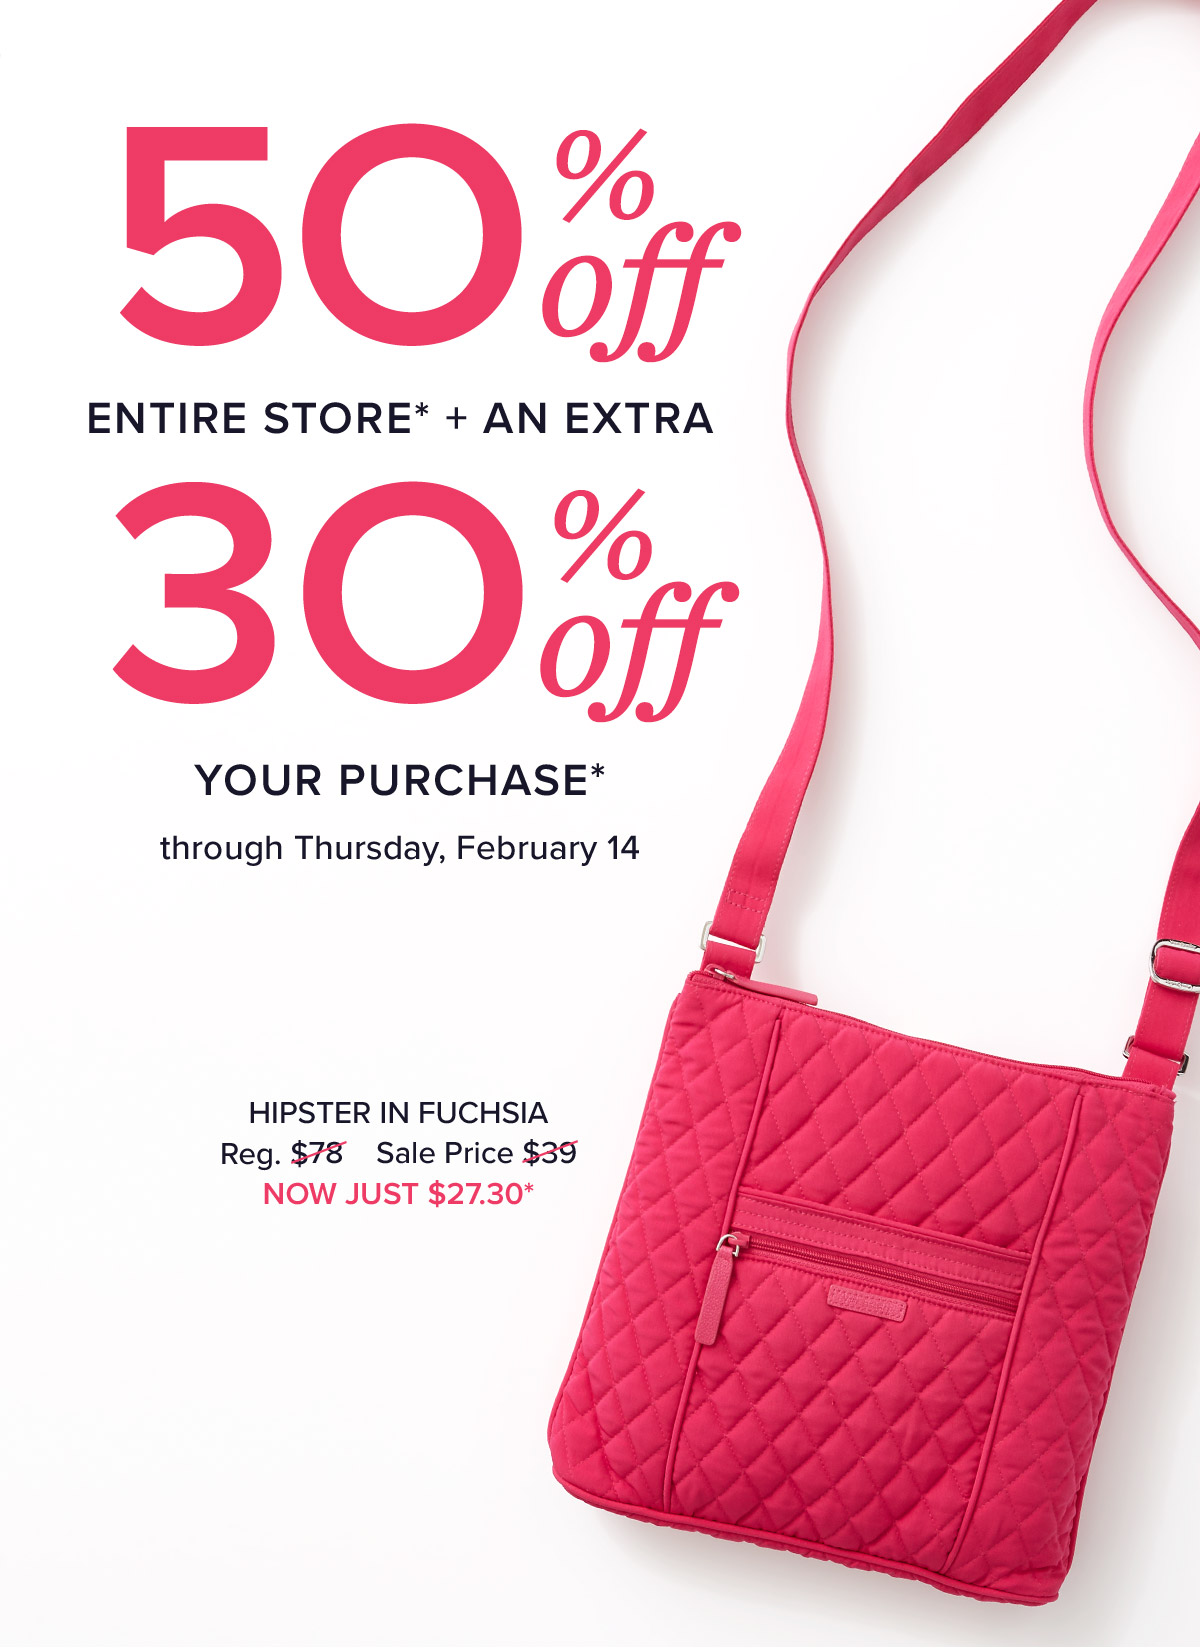 50% off the entire store + an extra 30% off your purchase. Vera Bradley  Outlet 089b3866e6c9f